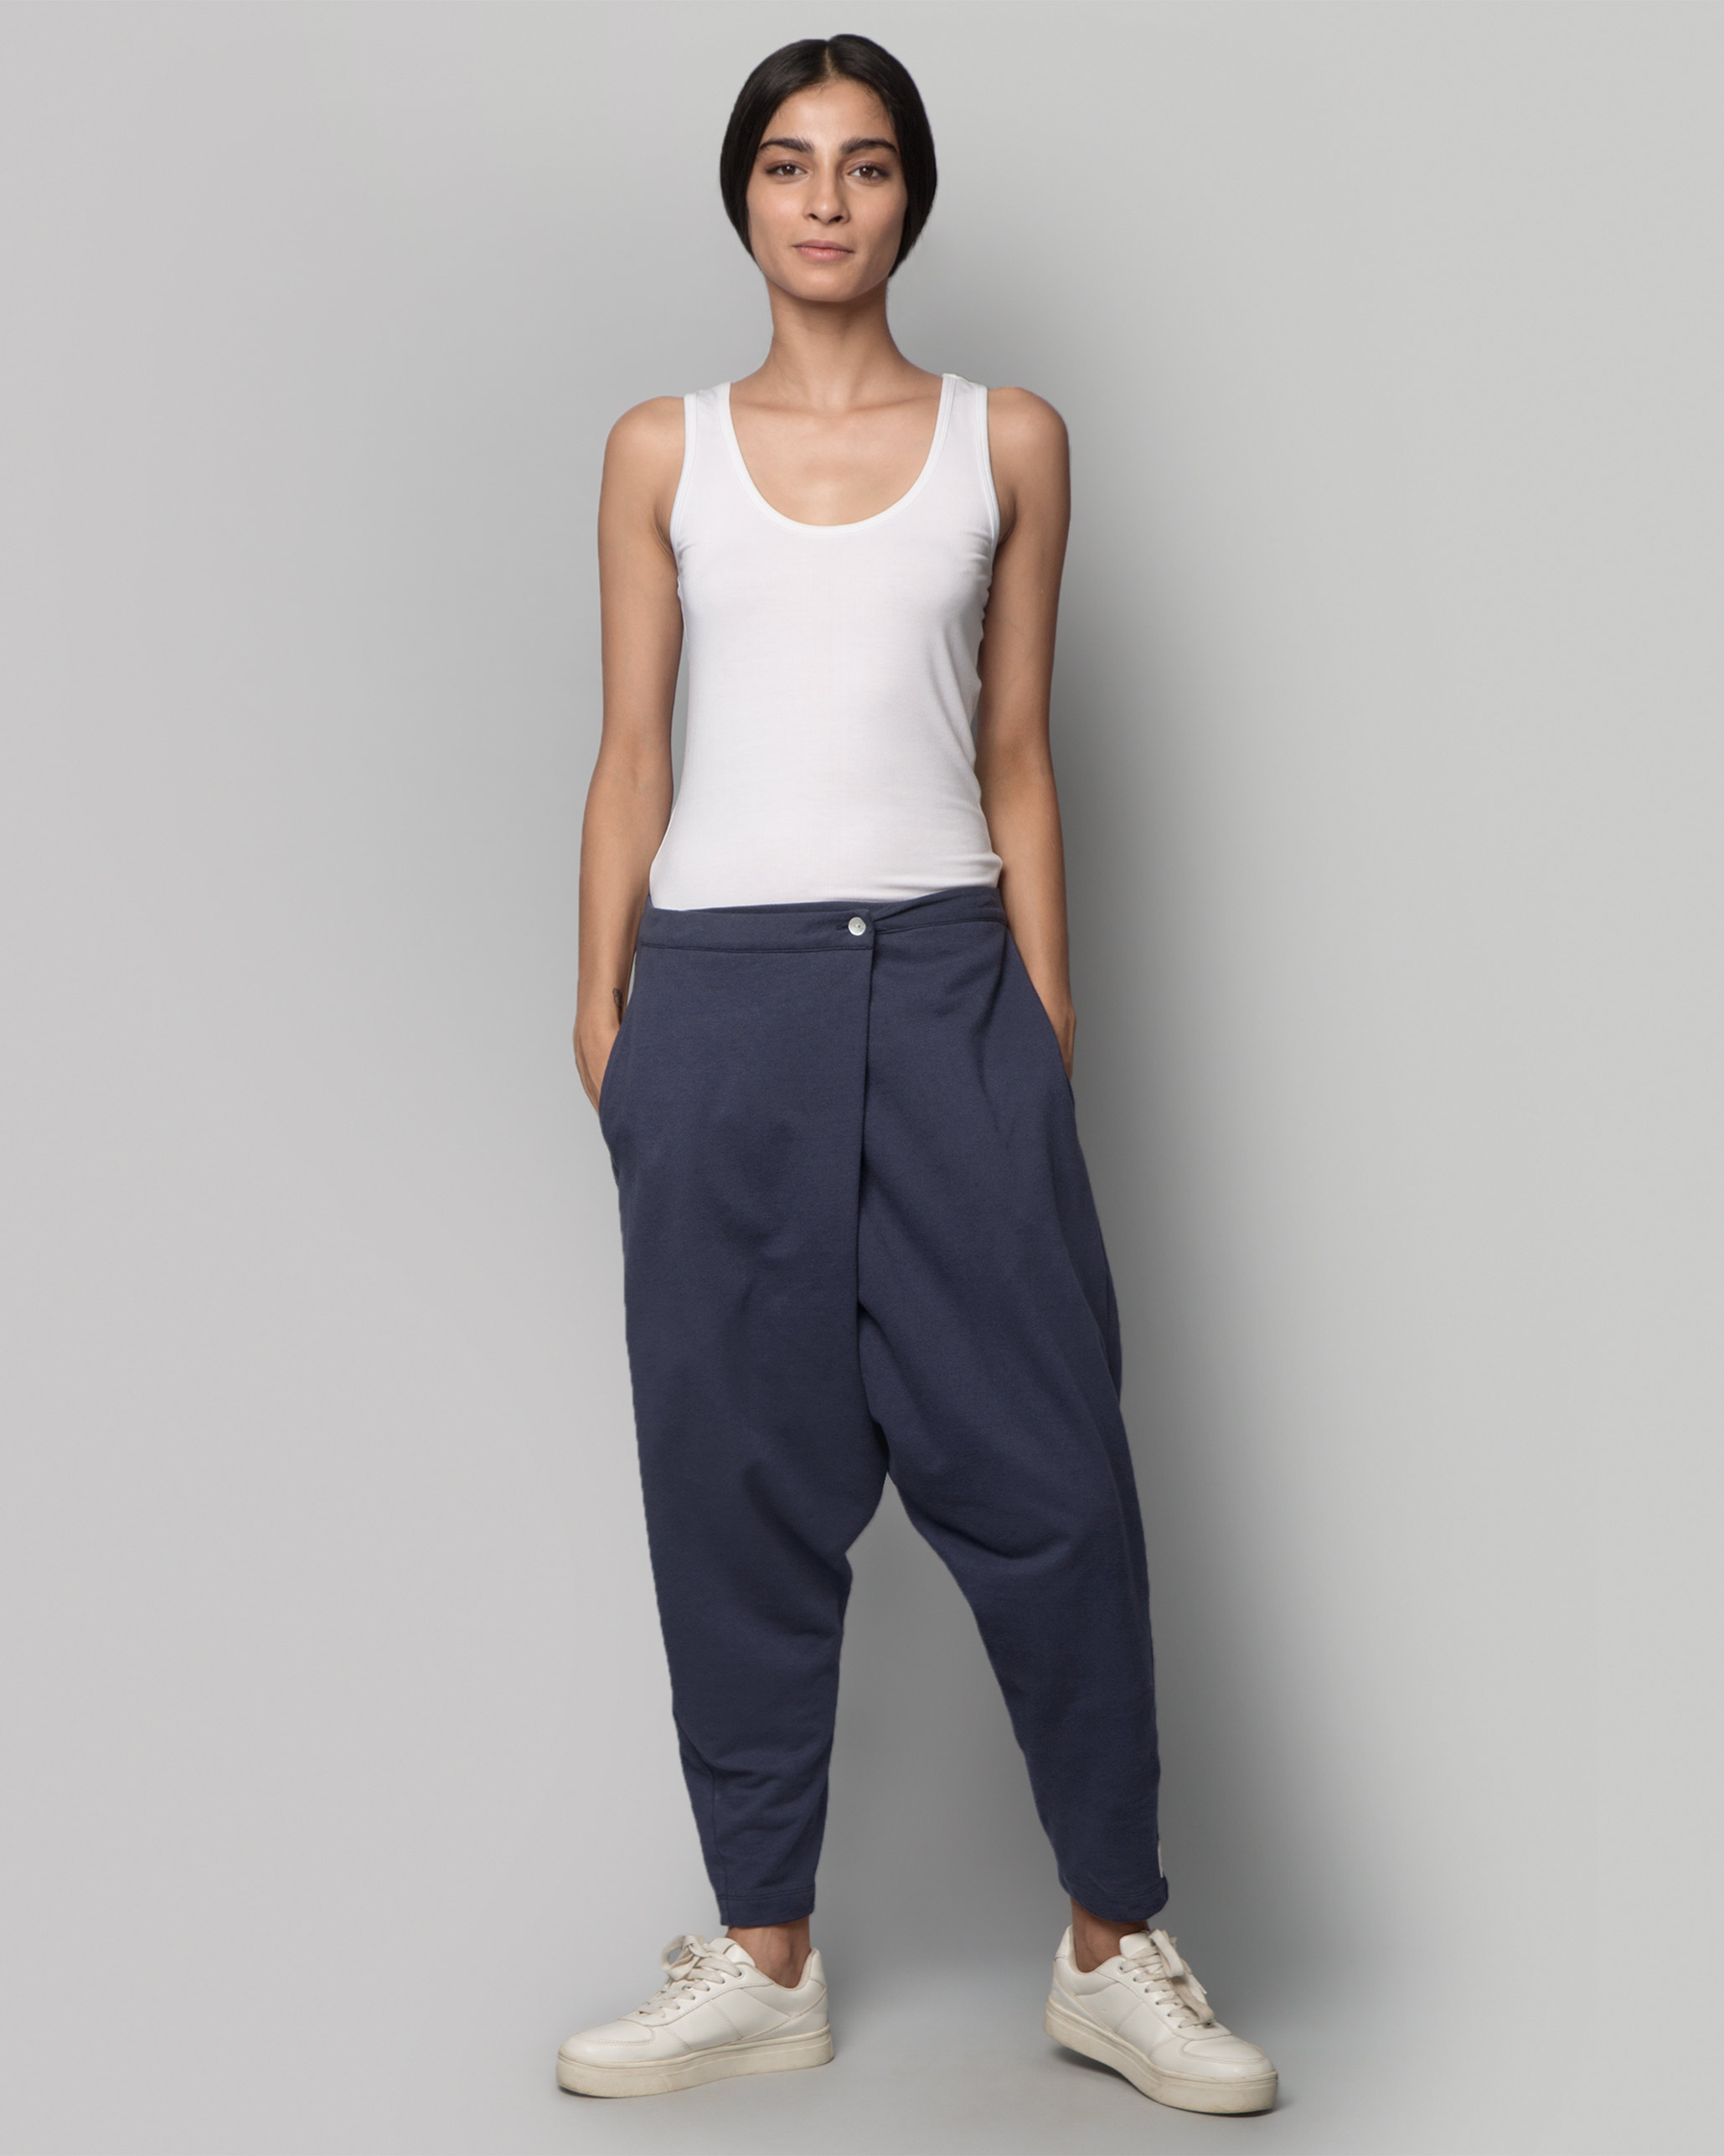 3f5184c3d6dd Jinan Slouchy Pants - Indigo from Travel collection at Nicobar